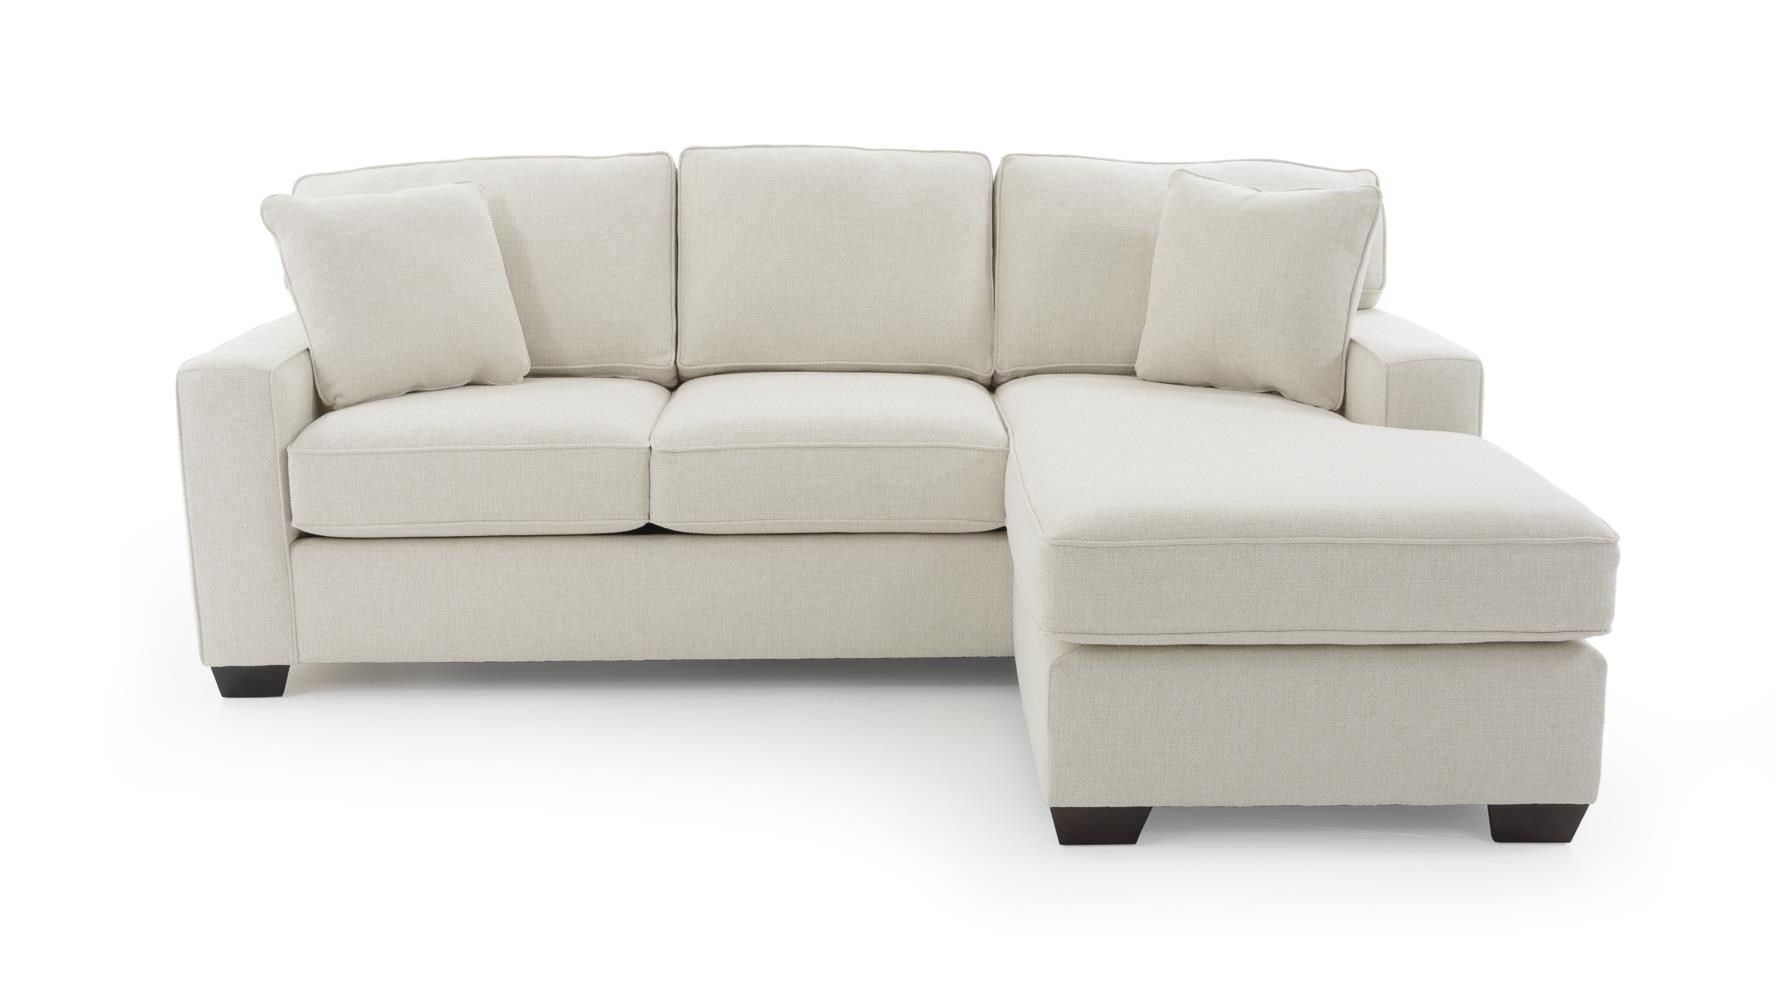 Max Home Bermuda Sleeper Sofa with Removable Chaise - Item Number: 9JH6-A-BK+9JH6-A-XC Cream